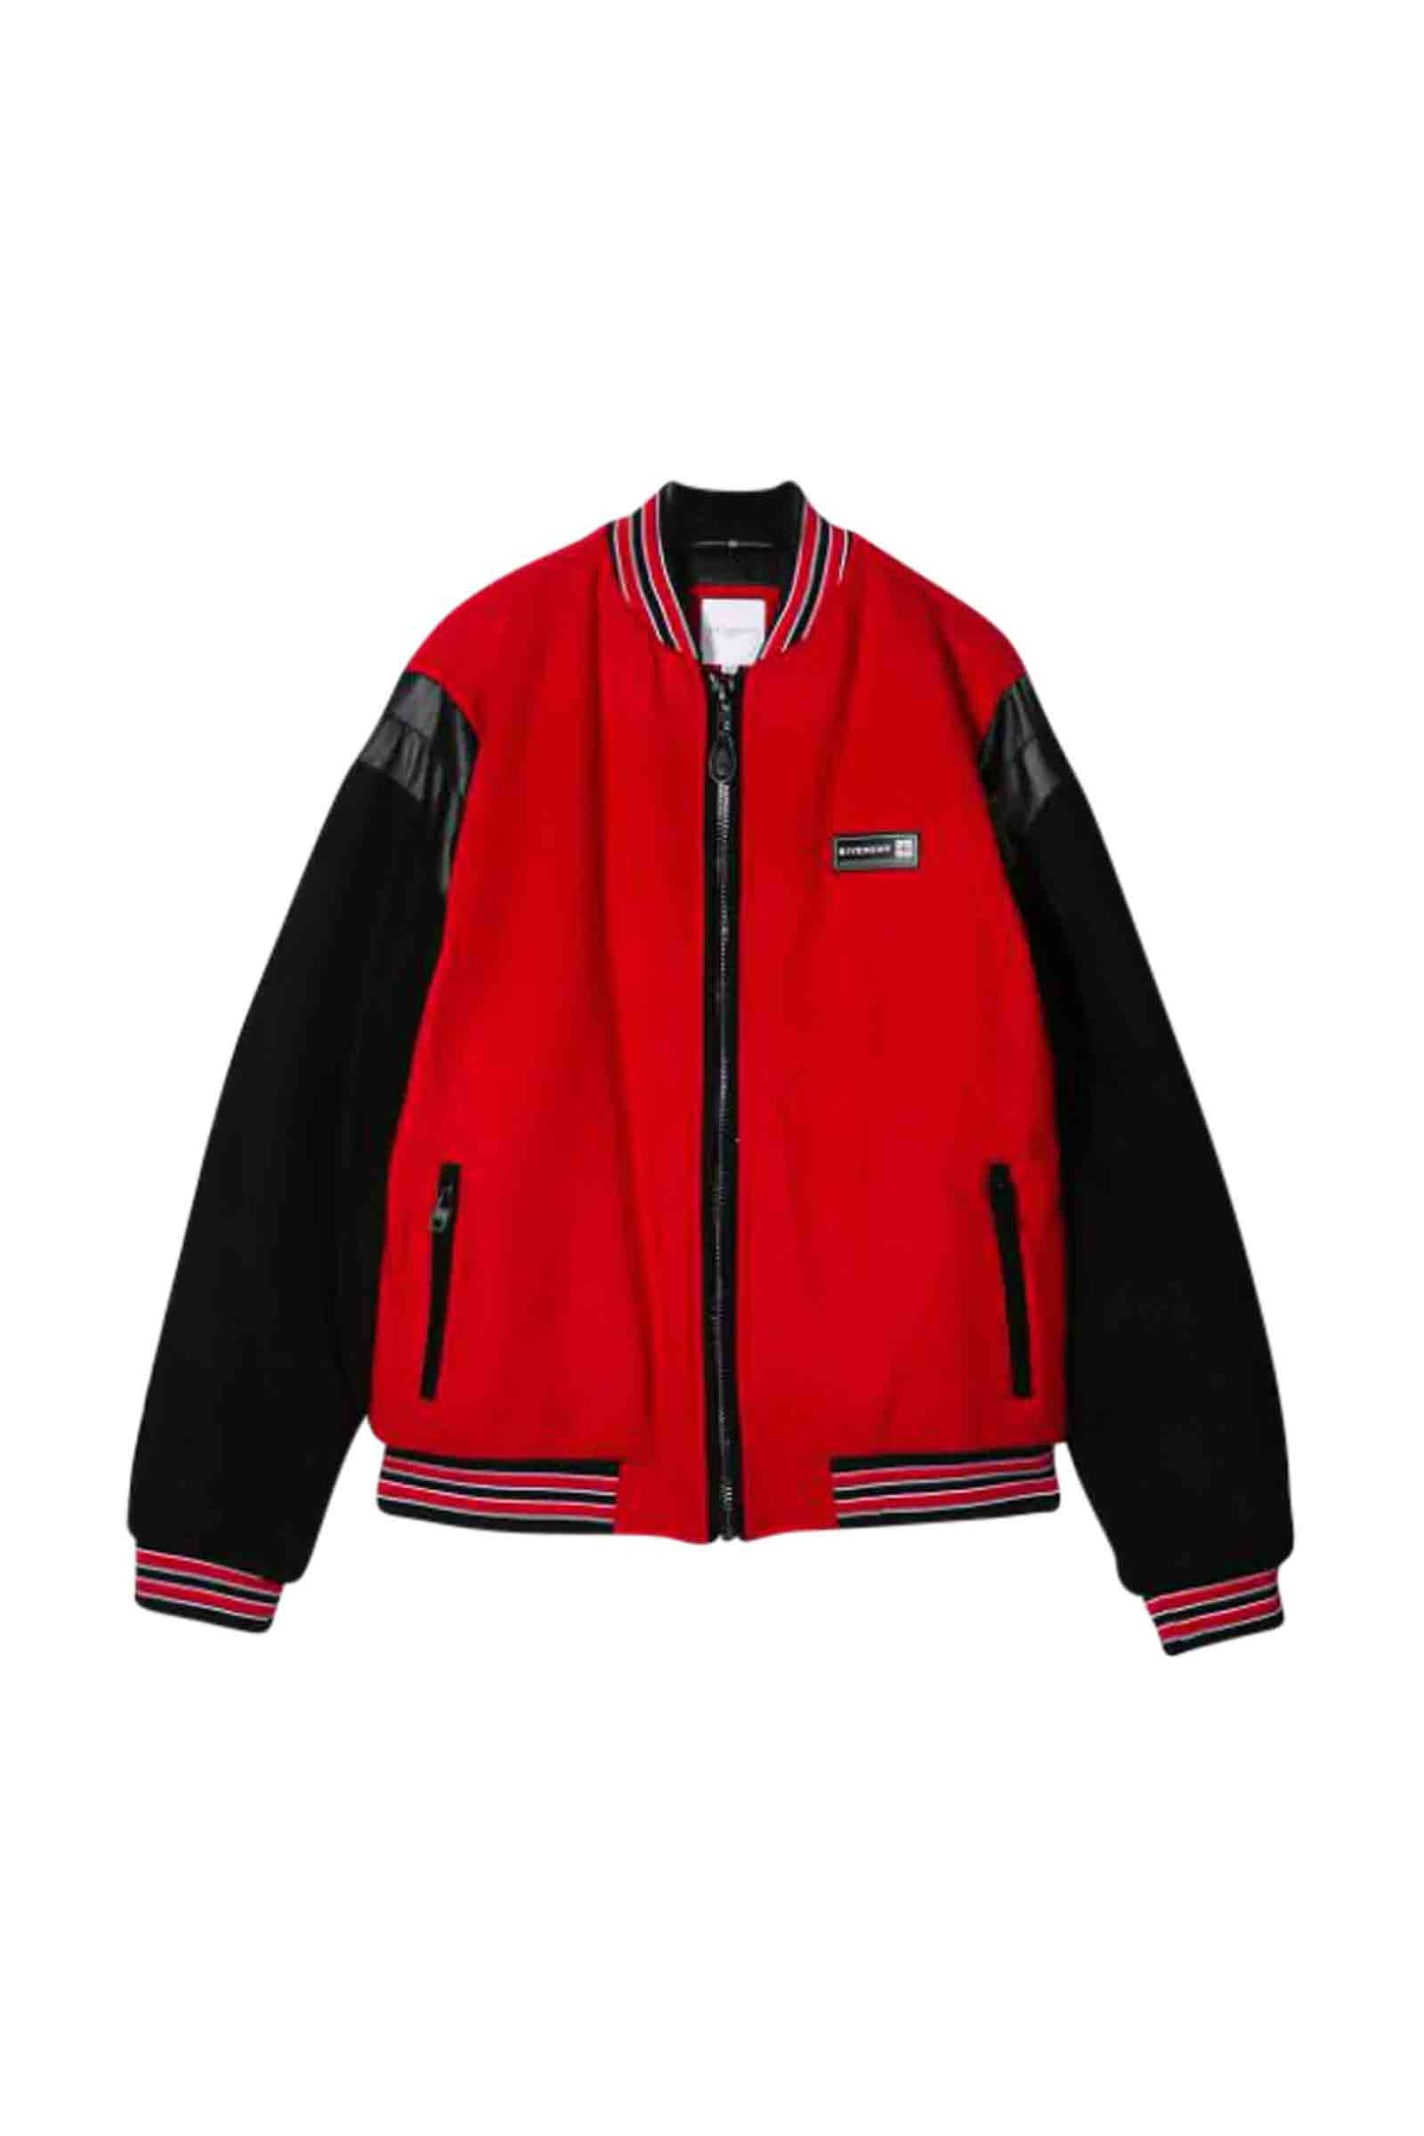 Givenchy Kids' Bomber Style Jacket With Embroidery In Nero/Rosso